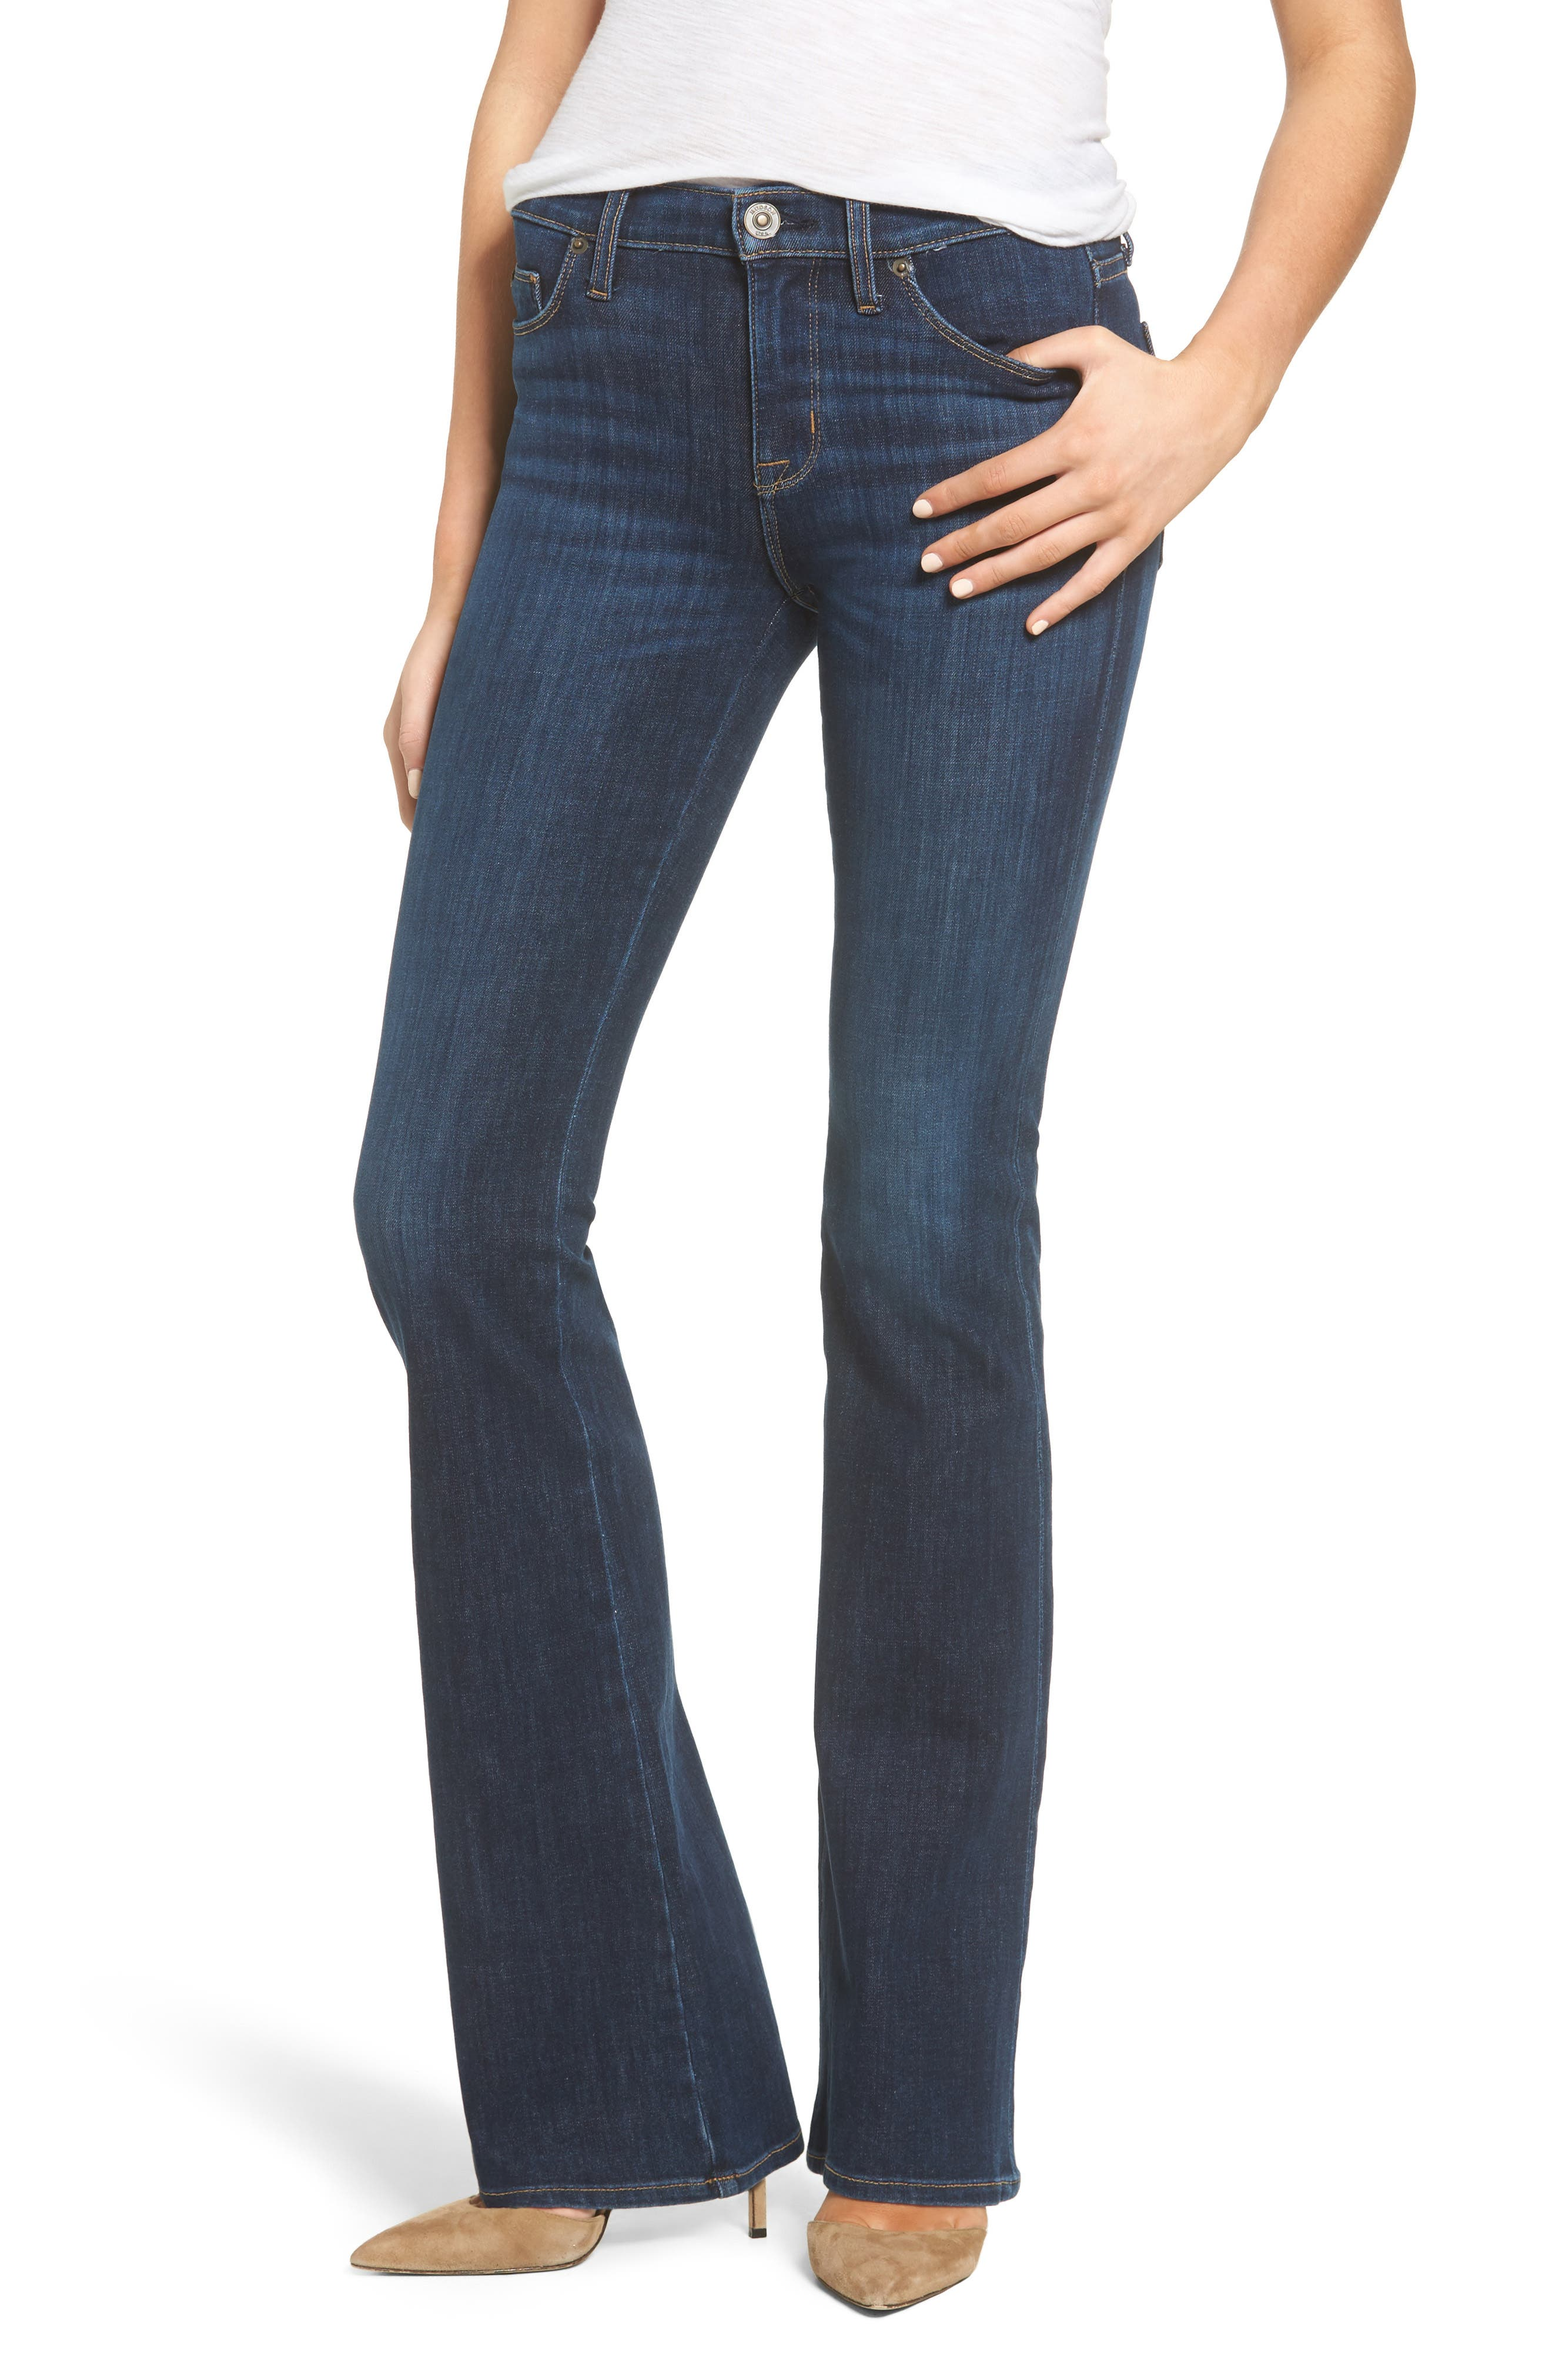 Alternate Image 1 Selected - Hudson Drew Bootcut Jeans (Trance)